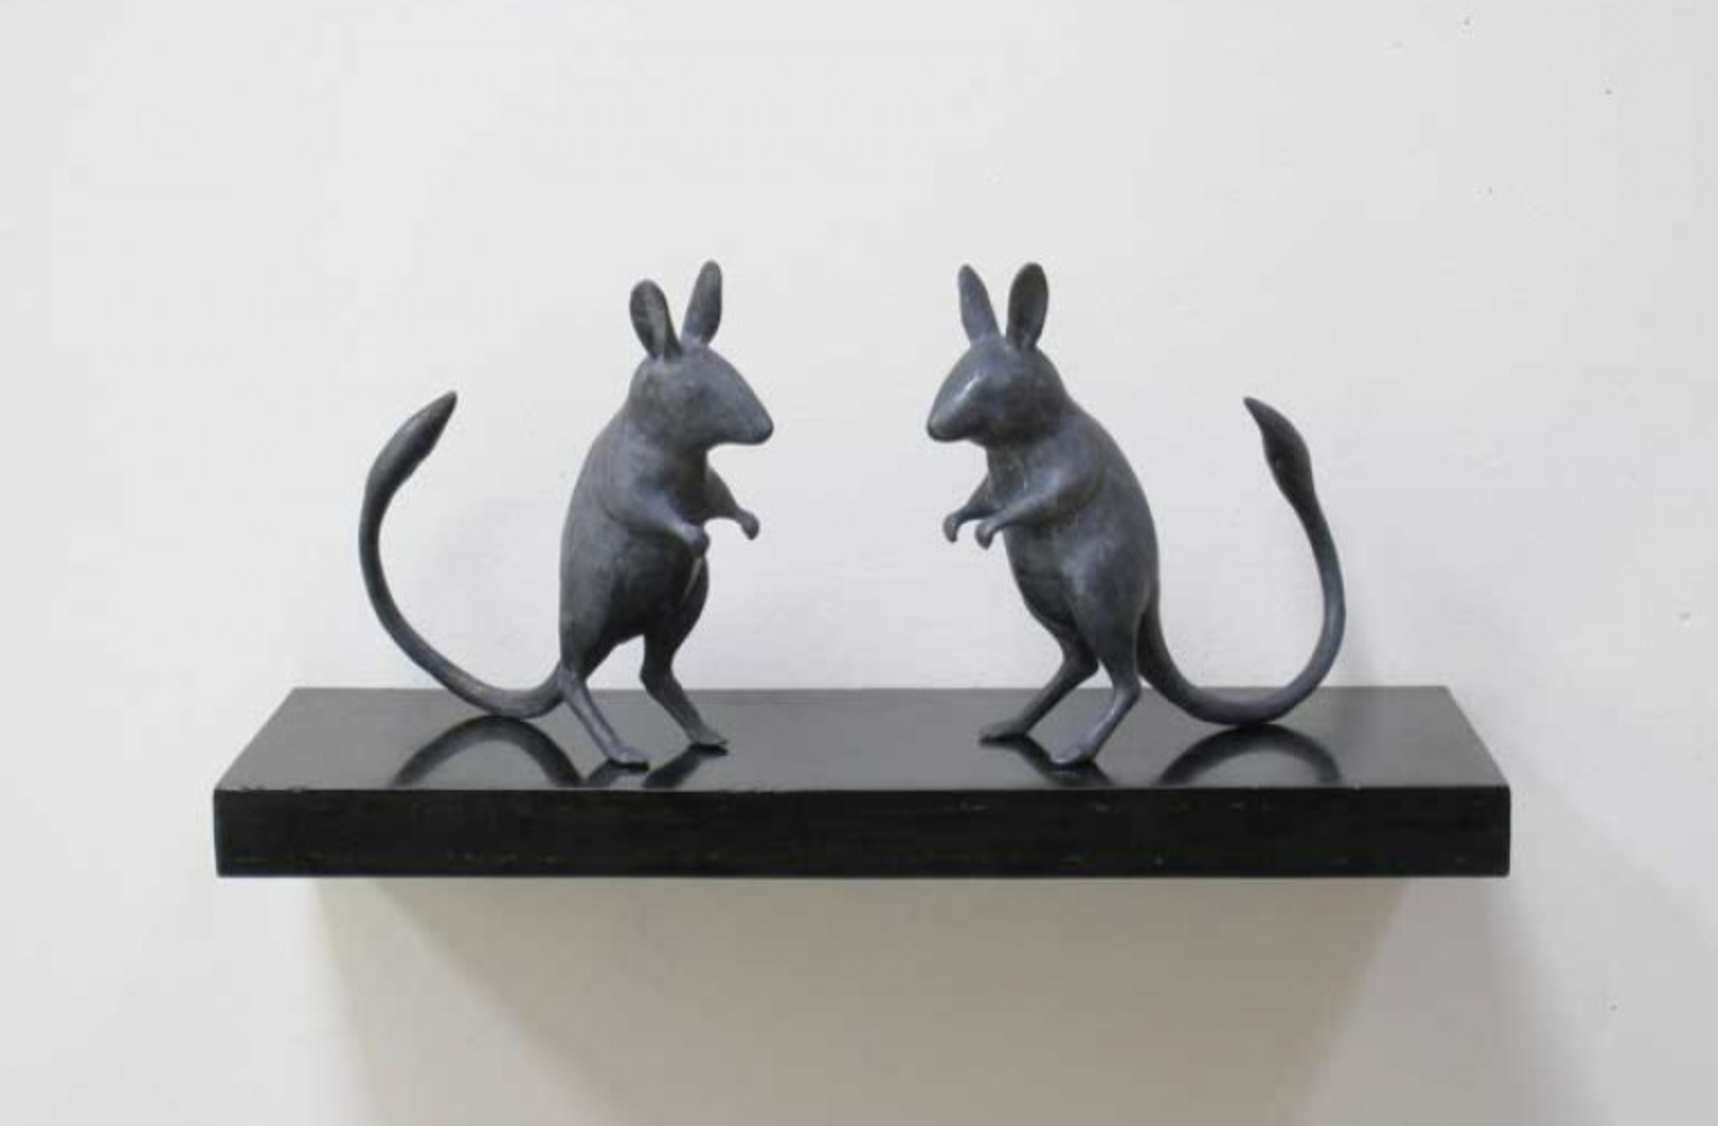 Untitled (Mice) 2009 cast lead 5.75 × 7 × 2 inches Edition 1/5